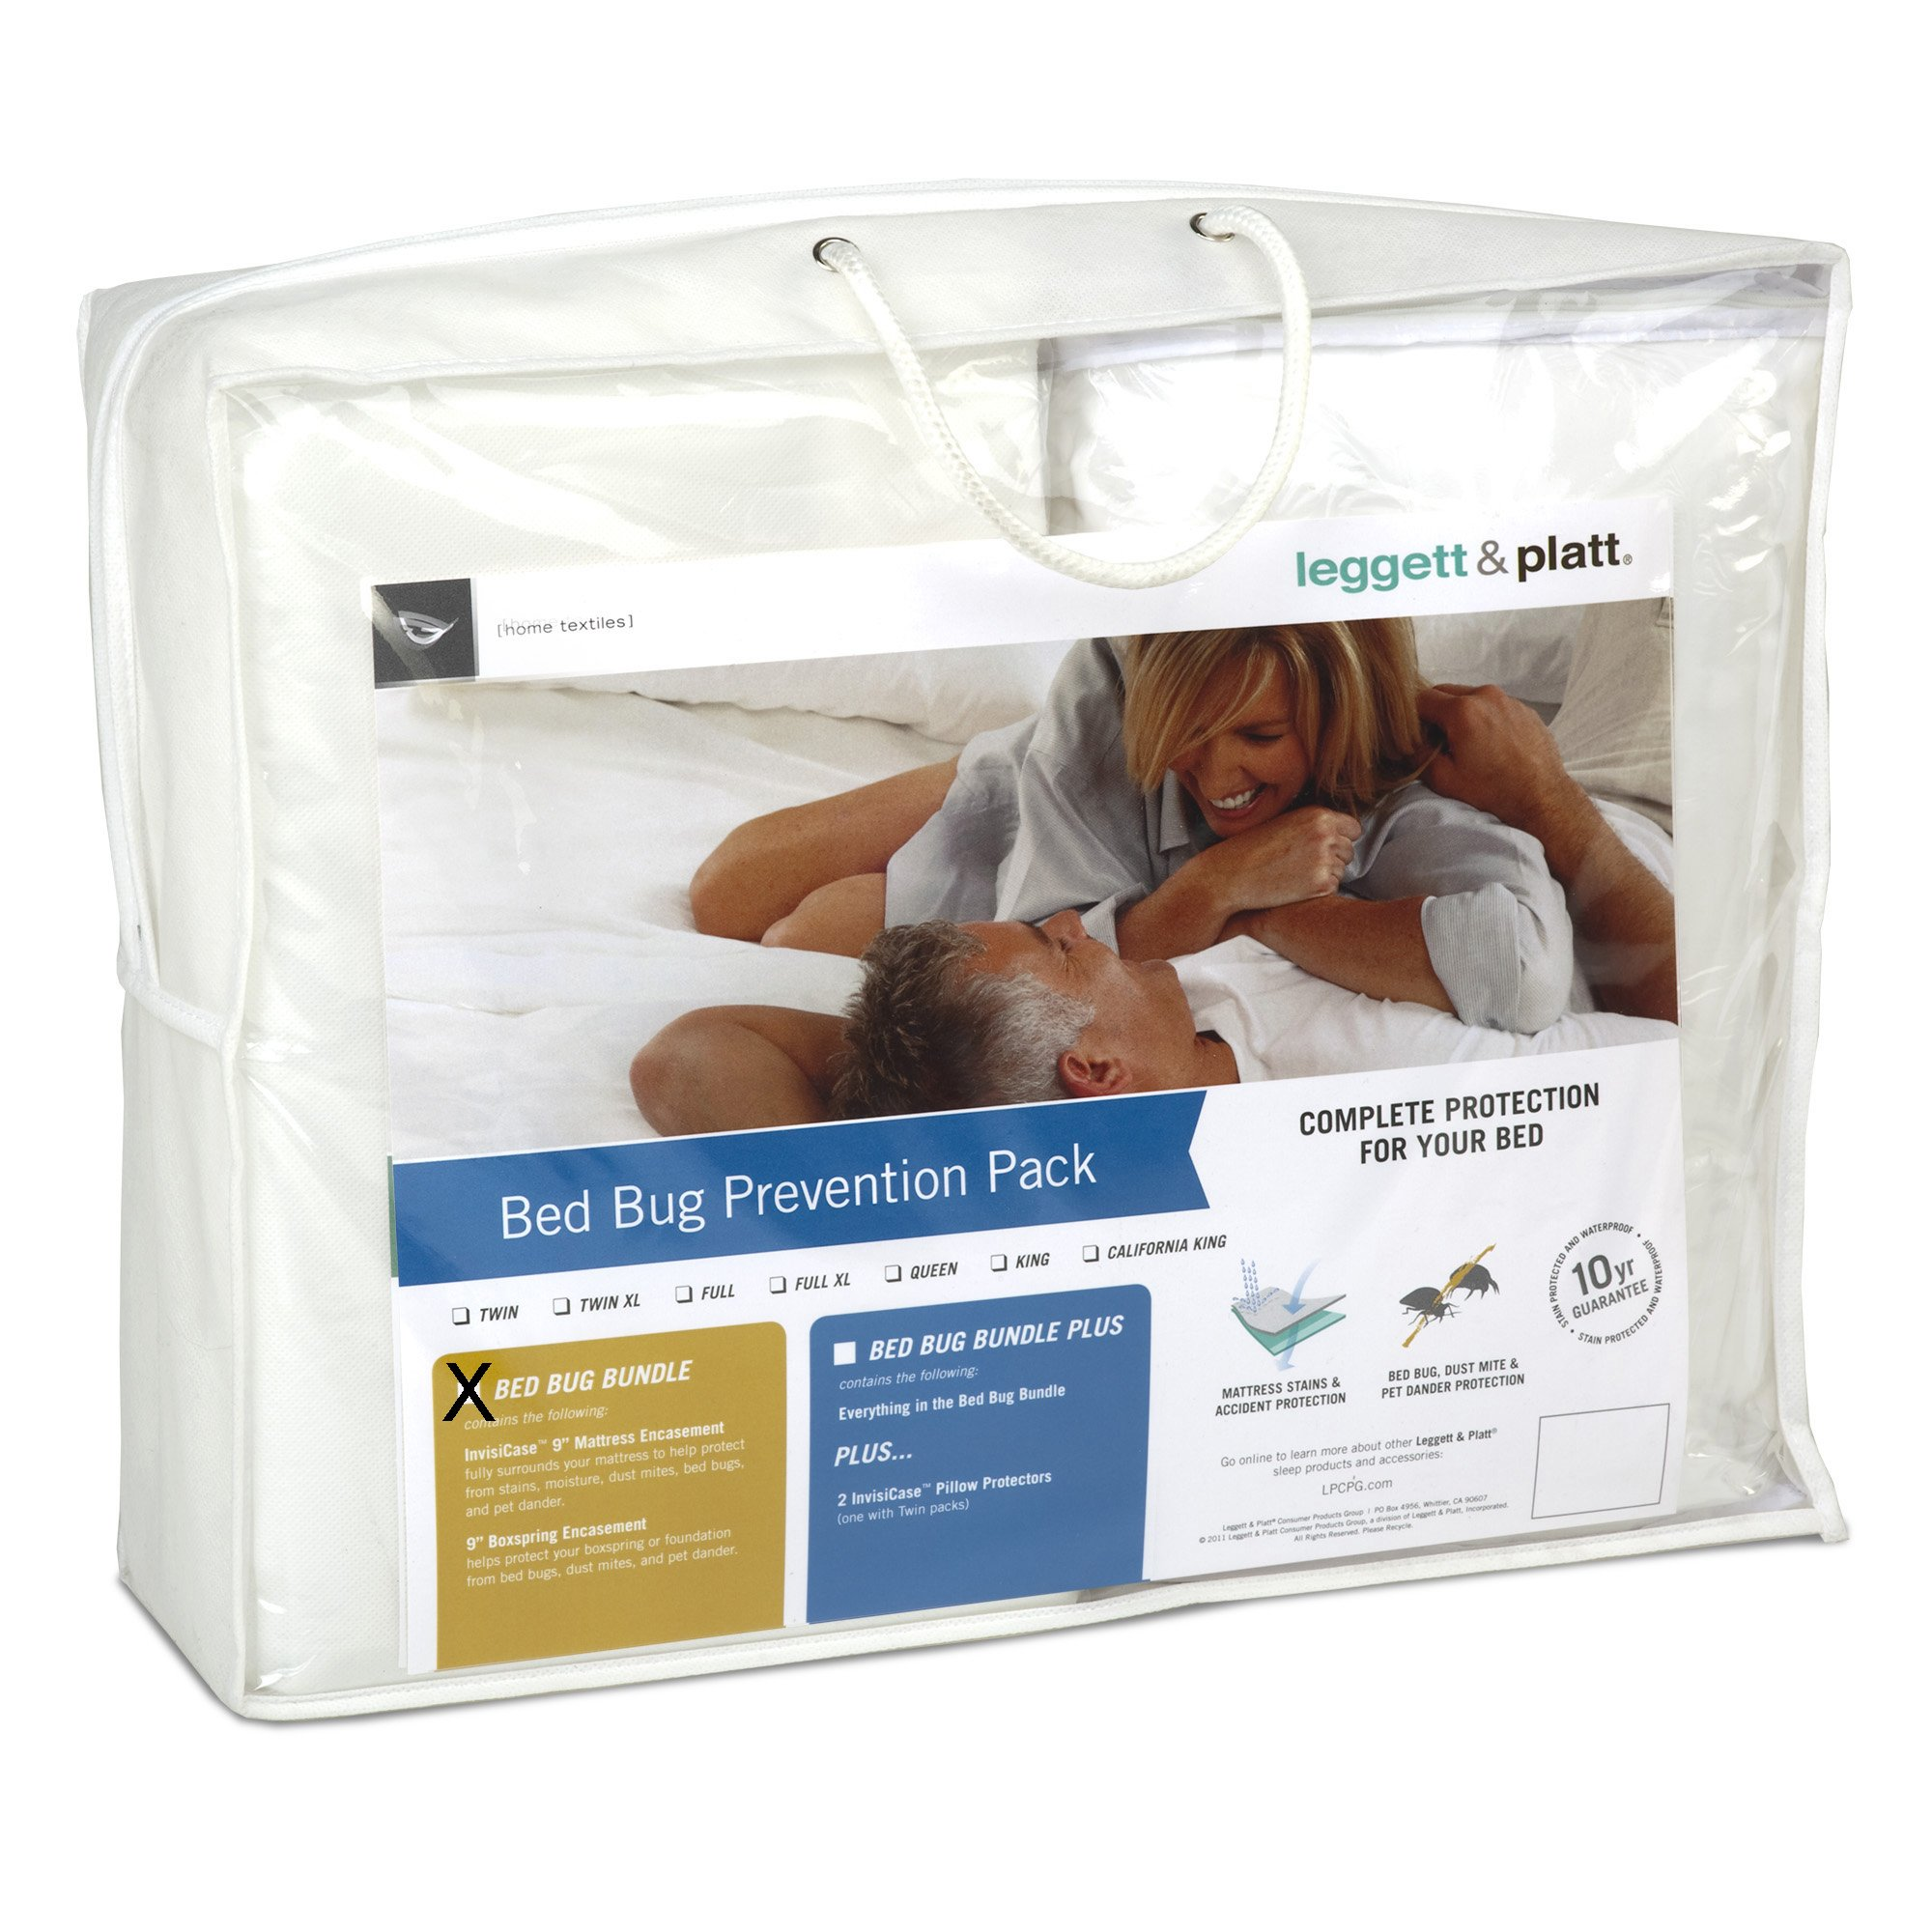 Fashion Bed Group SleepSense 2-Piece Bed Bug Prevention Pack with InvisiCase 9-Inch Mattress and Box Spring Encasement Bundle, Full